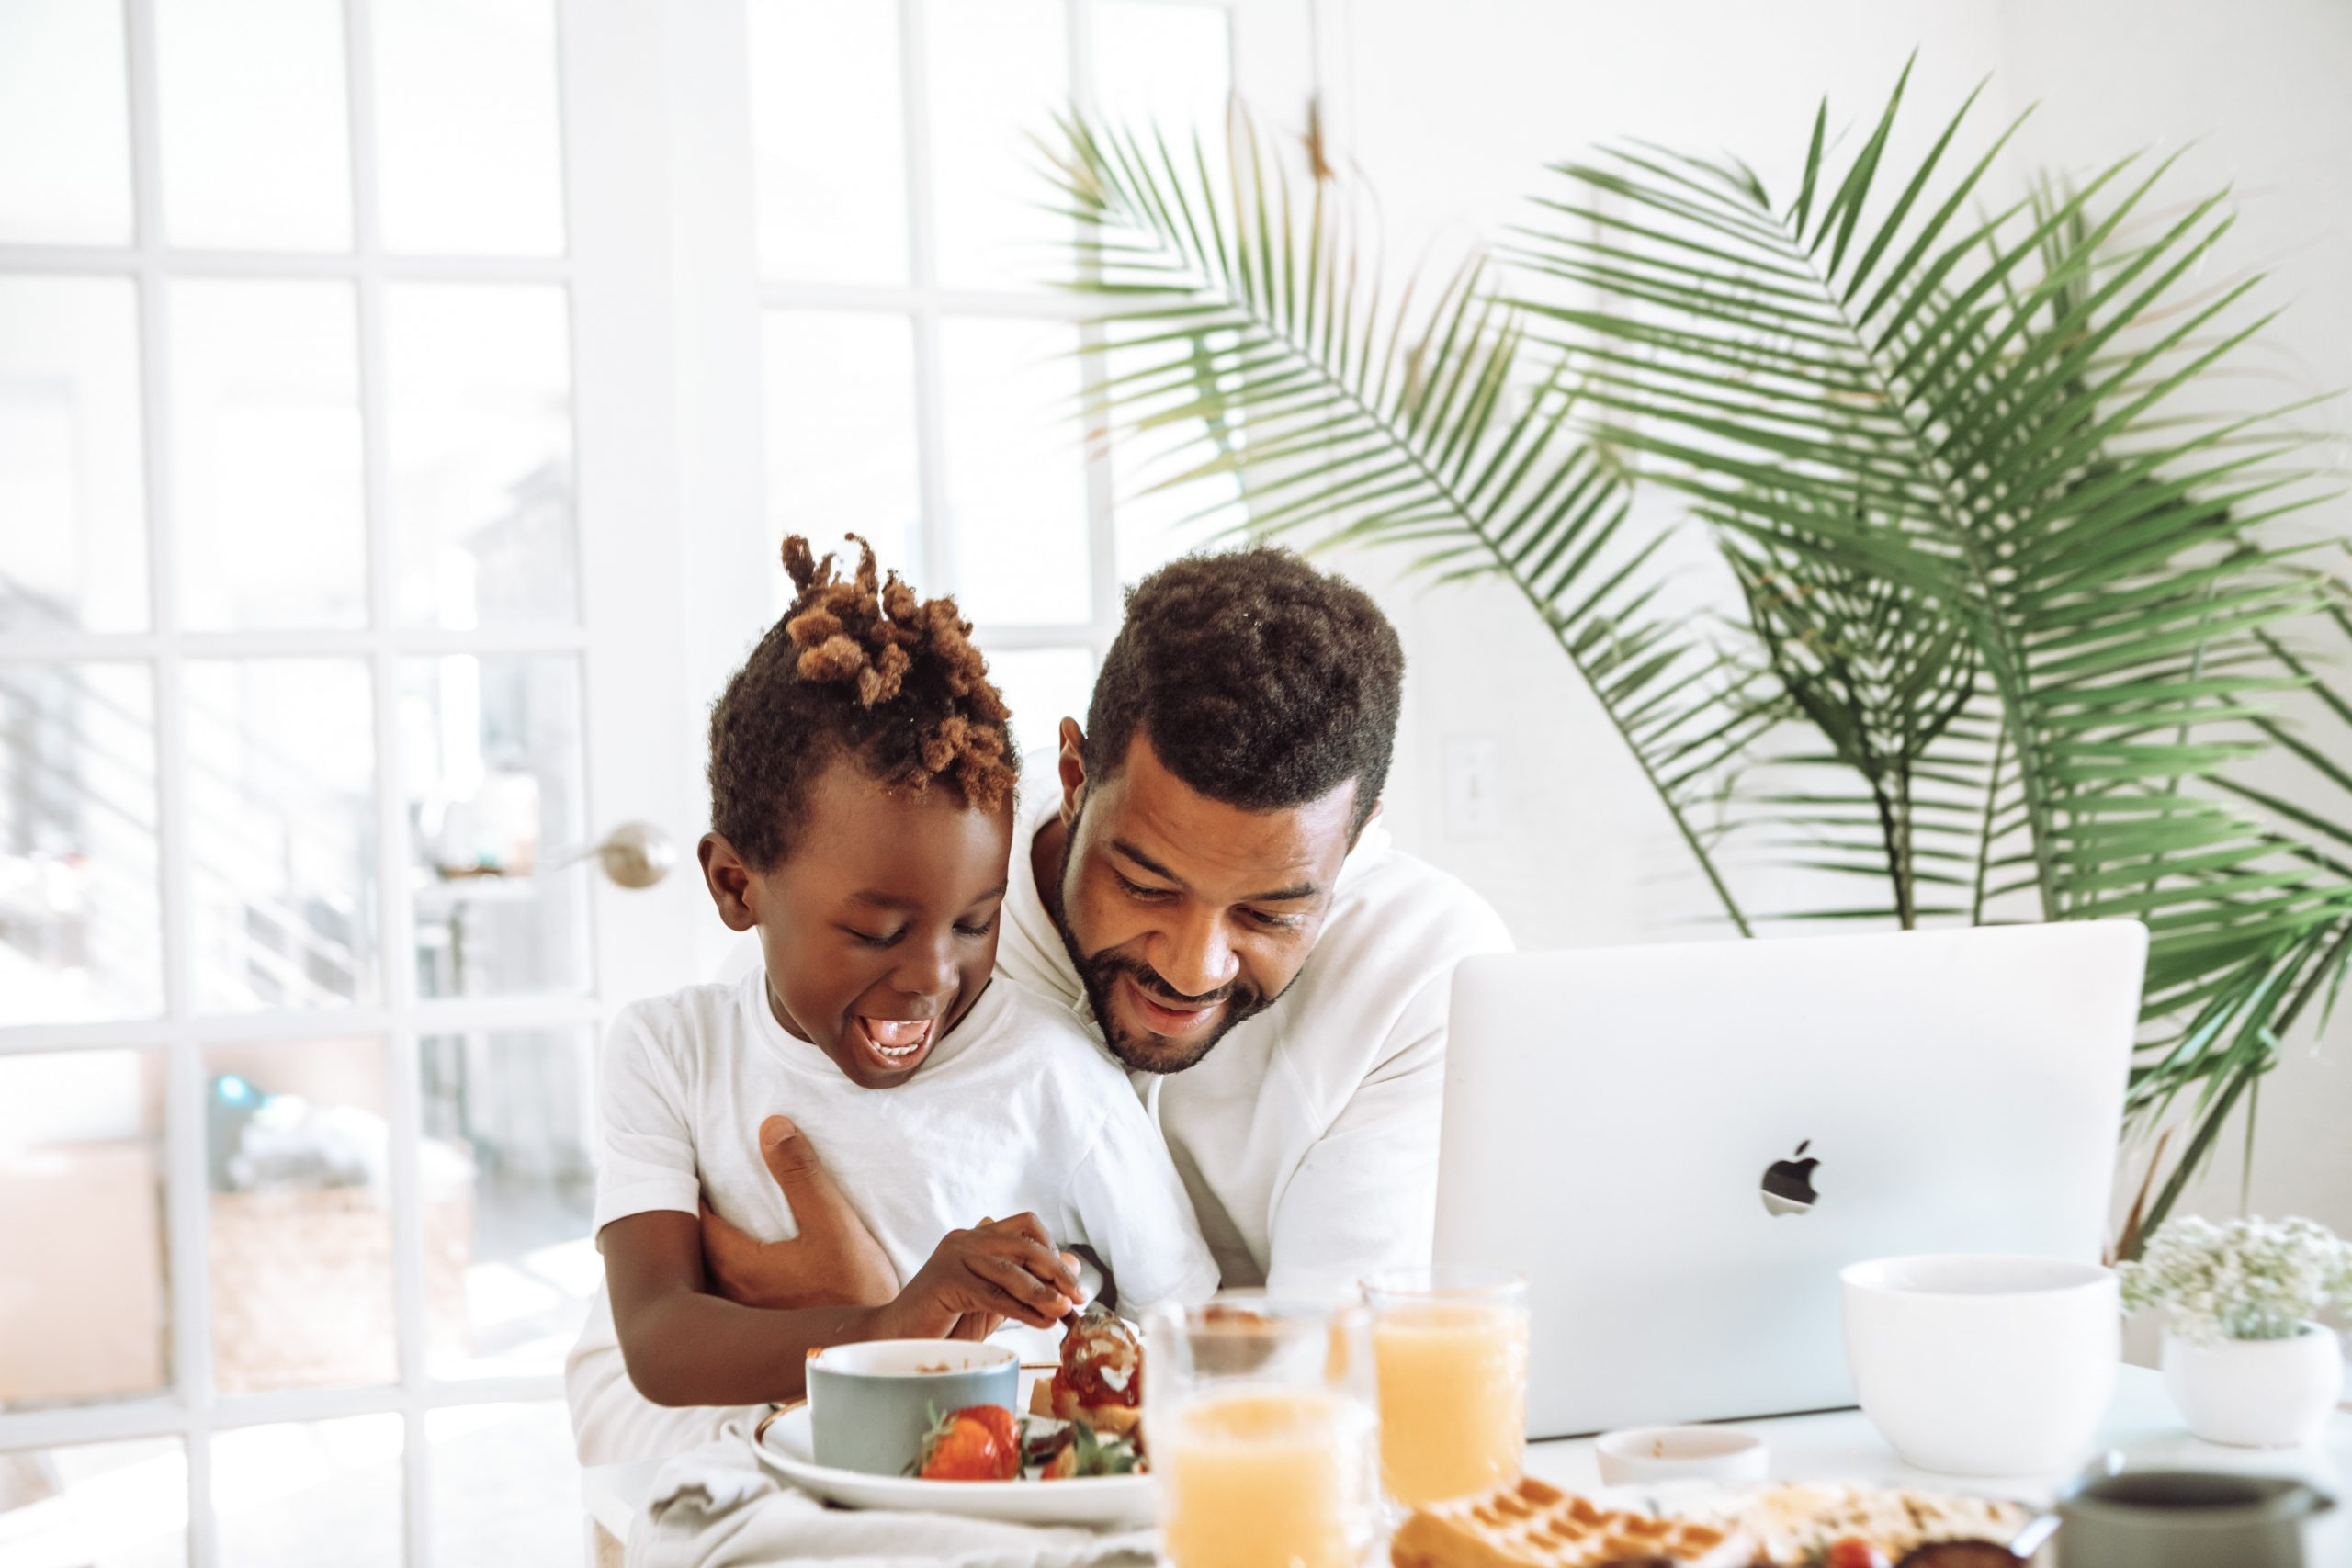 man sitting with son at breakfast table